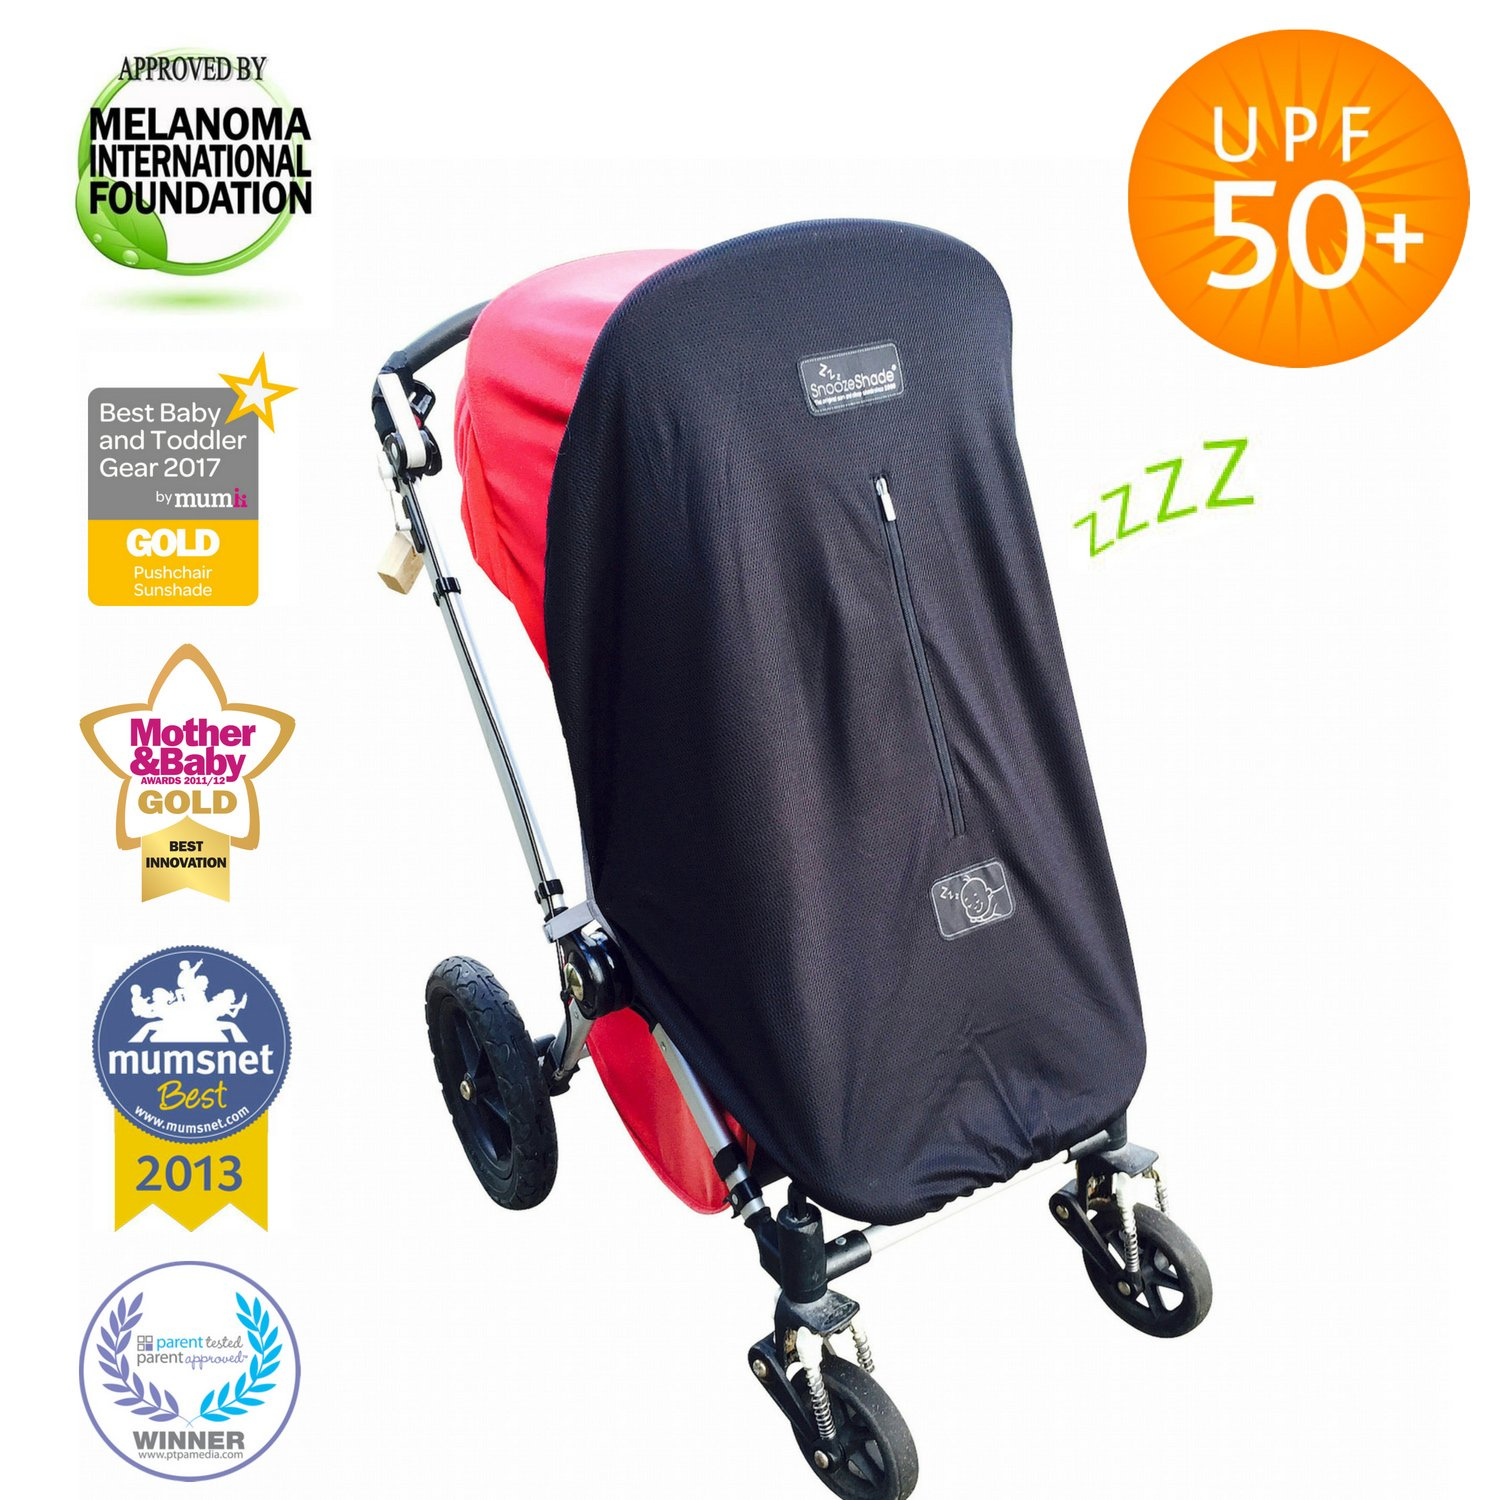 Baby Sun Shade and Blackout Blind for Strollers | Blocks 99% of UV | Breathable